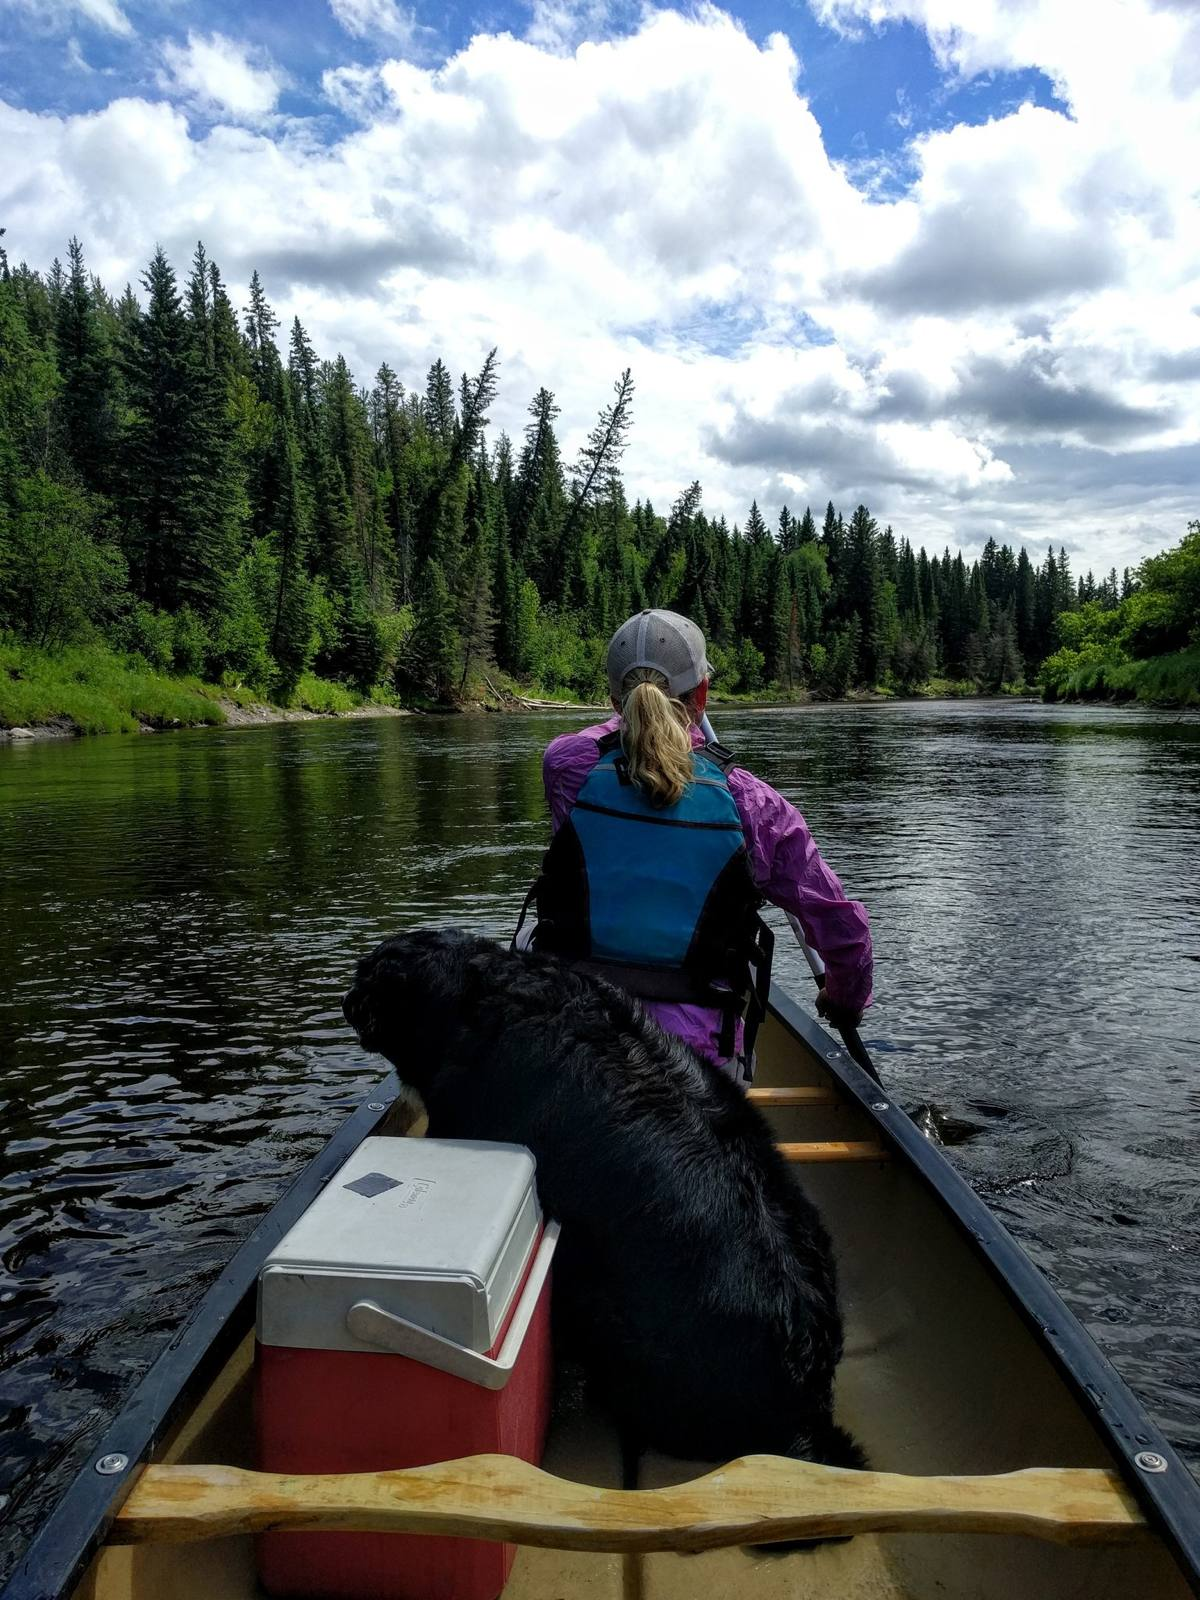 Dave Rempel - Day tripping on the Torch River, northern Saskatchewan